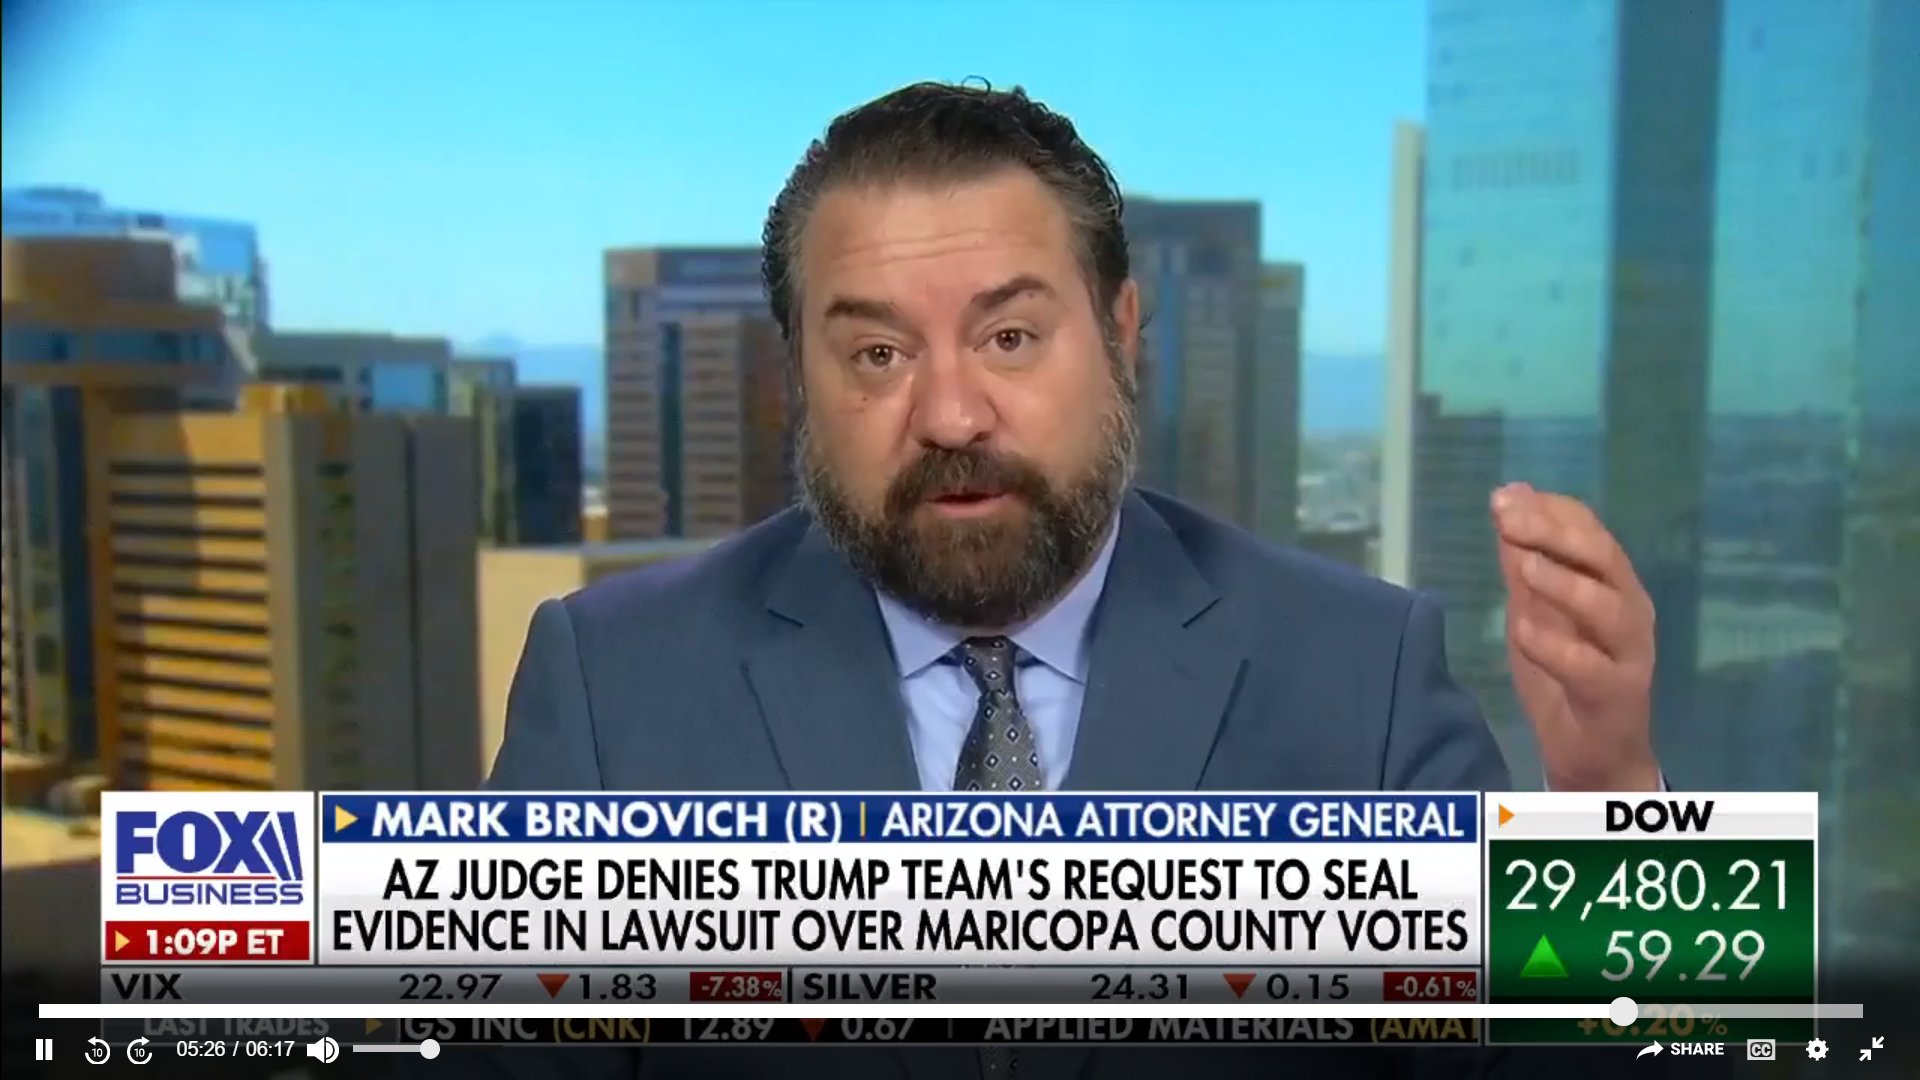 Arizona Attorney General Mark Brnovich rejects Trump's claims of voter  fraud in the state - The Washington Post